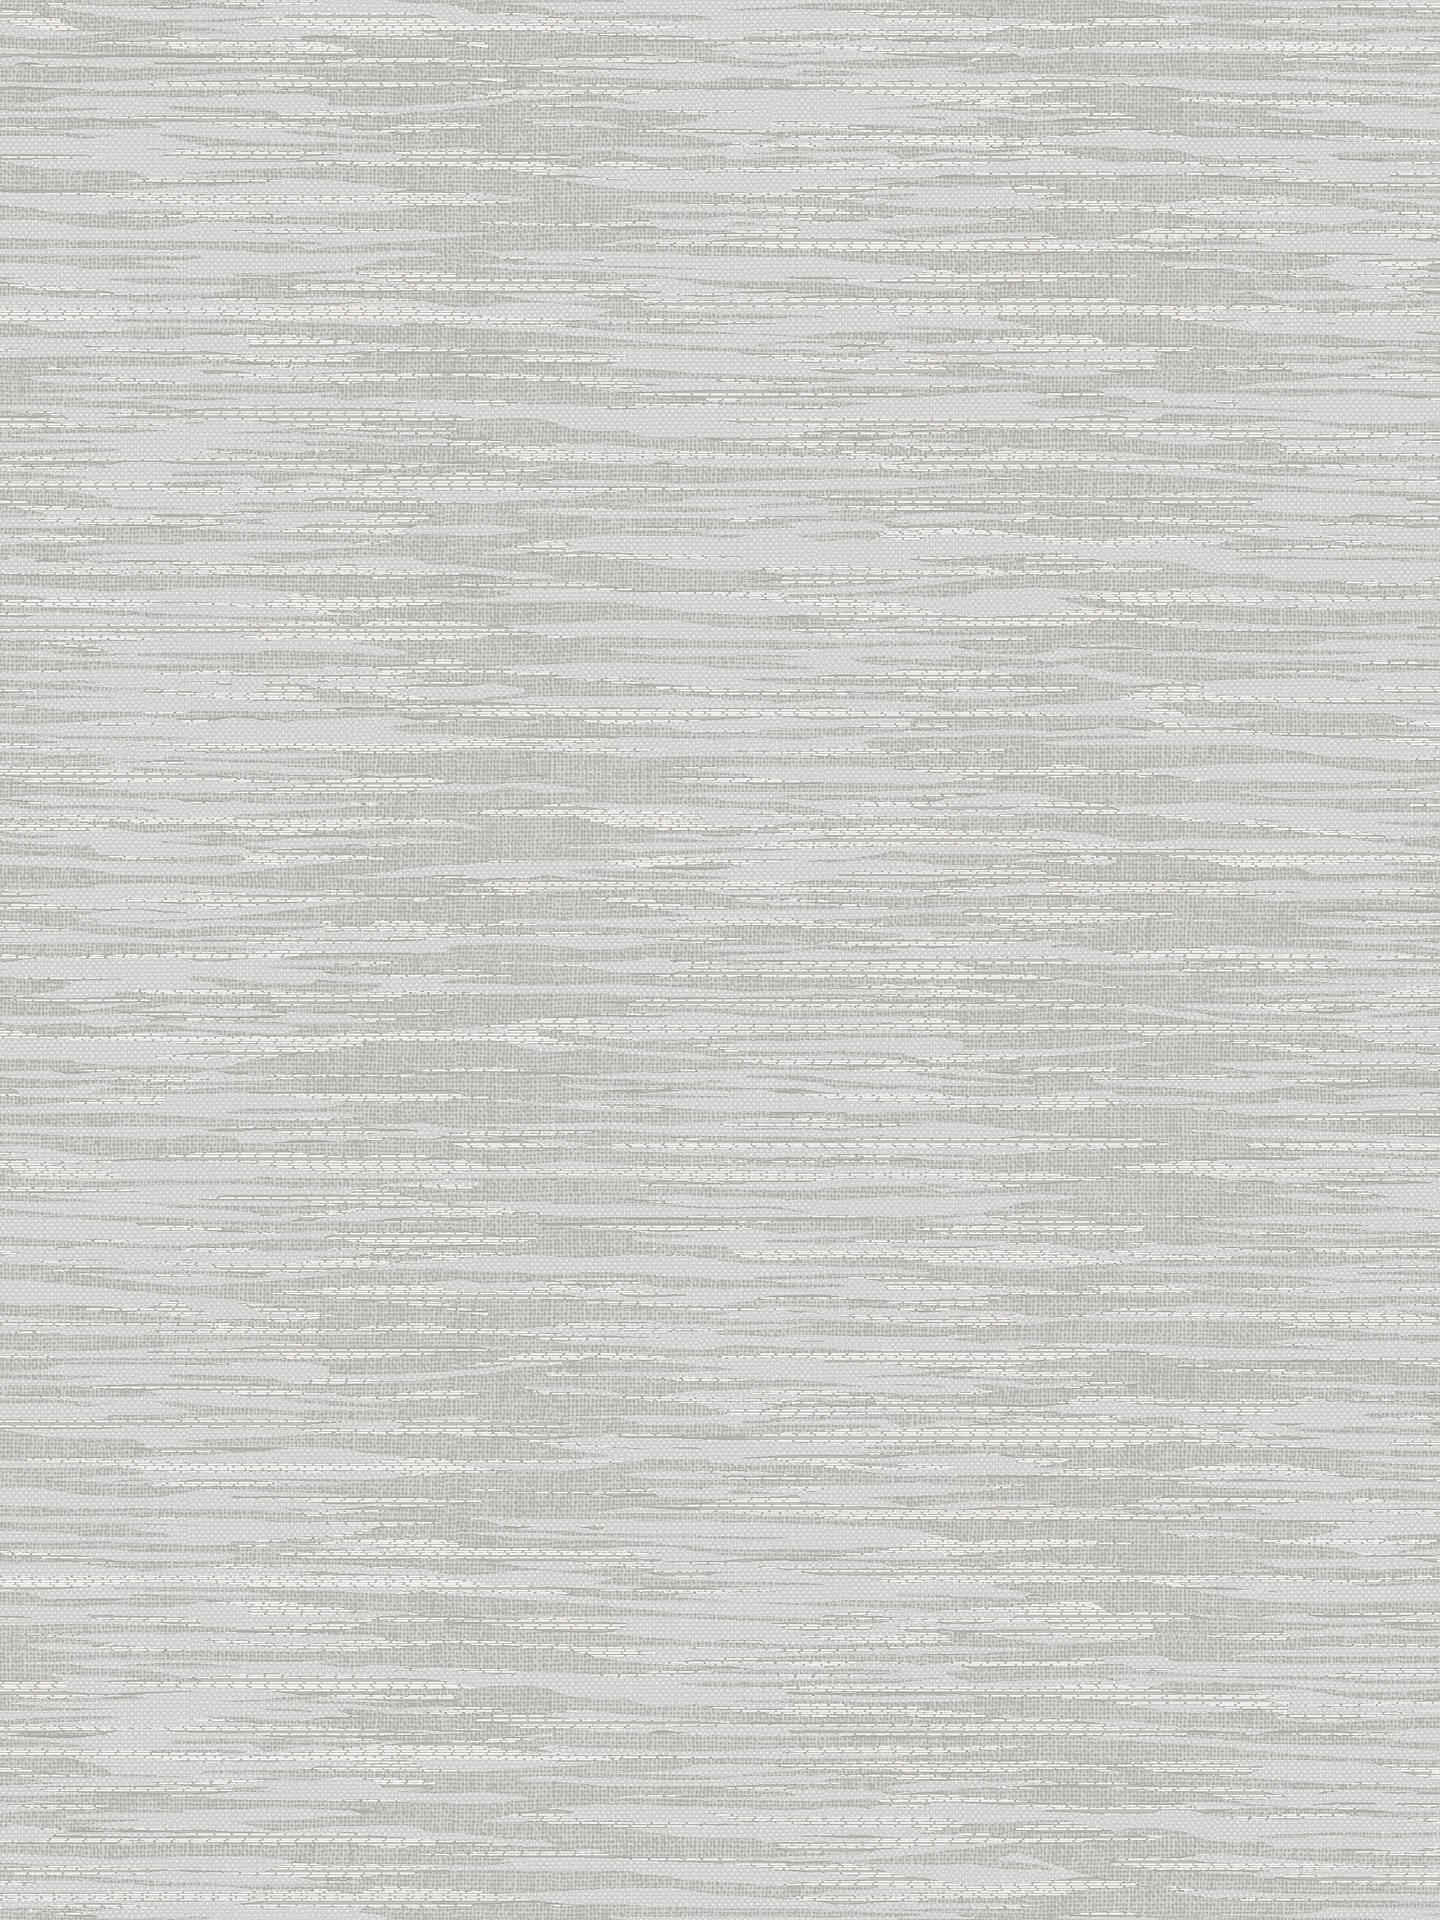 Buy Terence Conran Morrum Ombre Wallpaper, TC25261 Online at johnlewis.com